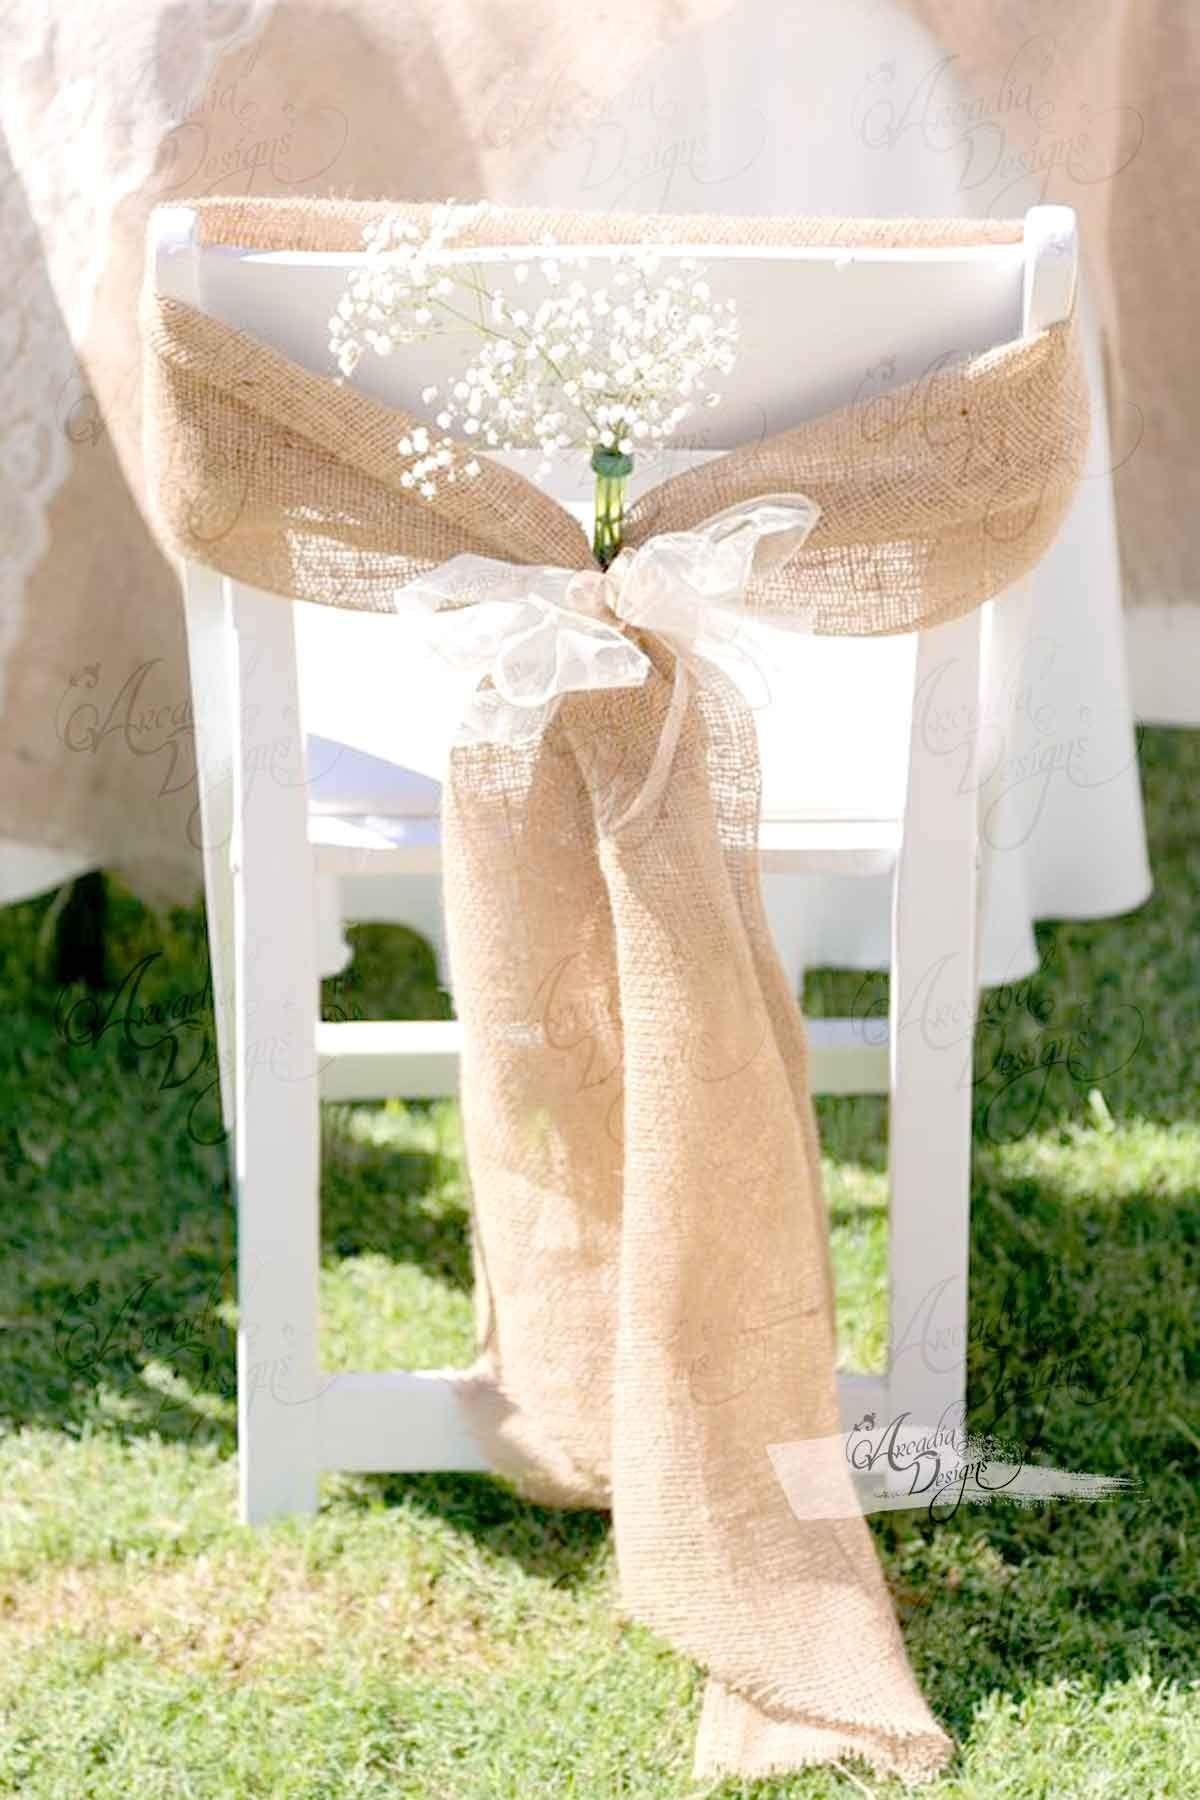 Burlap Chair Covers For Folding Chairs Wheels Office Rustic Decor Natural Tan Wide Sash In 2019 These Handmade Is The Perfect Touch To Wedding Or Fall Events Set Of 2 Sashes With Ribbons